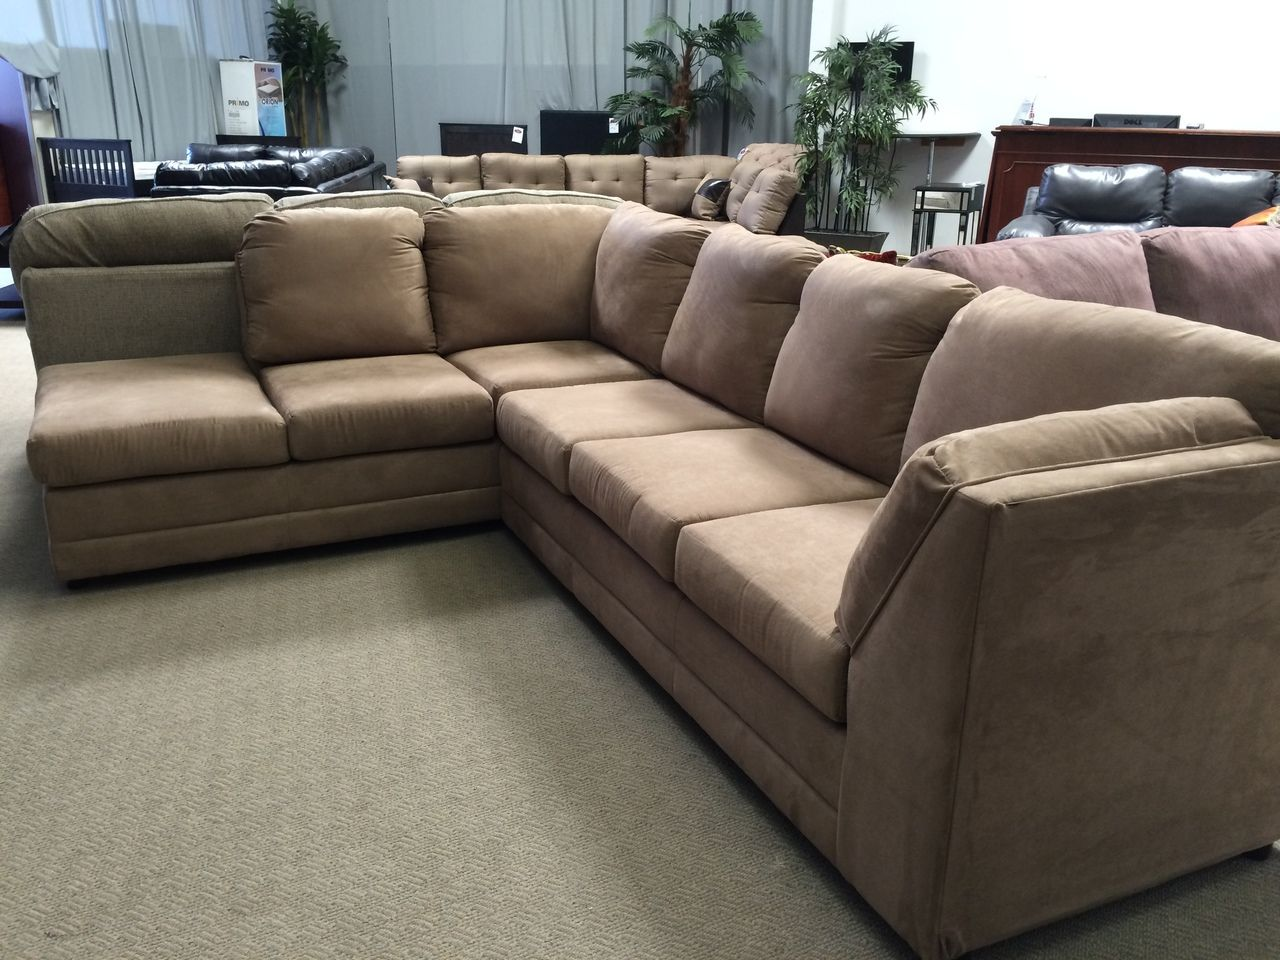 Cheap Sectional Sofas Serta Sectional Tan FA Clearance